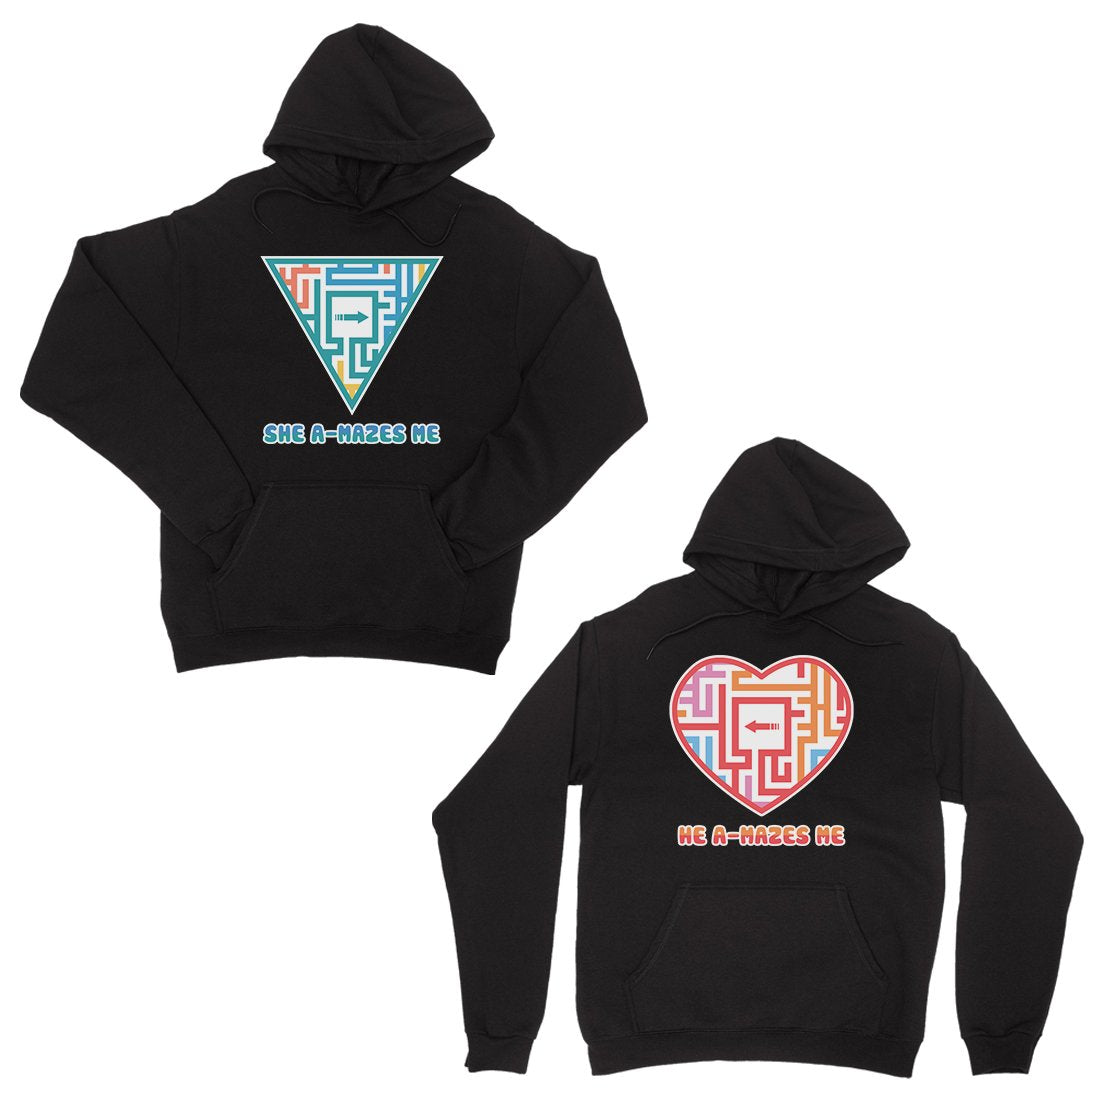 A-Mazes Me Black Matching Hoodies Pullover Unique Couples Gifts